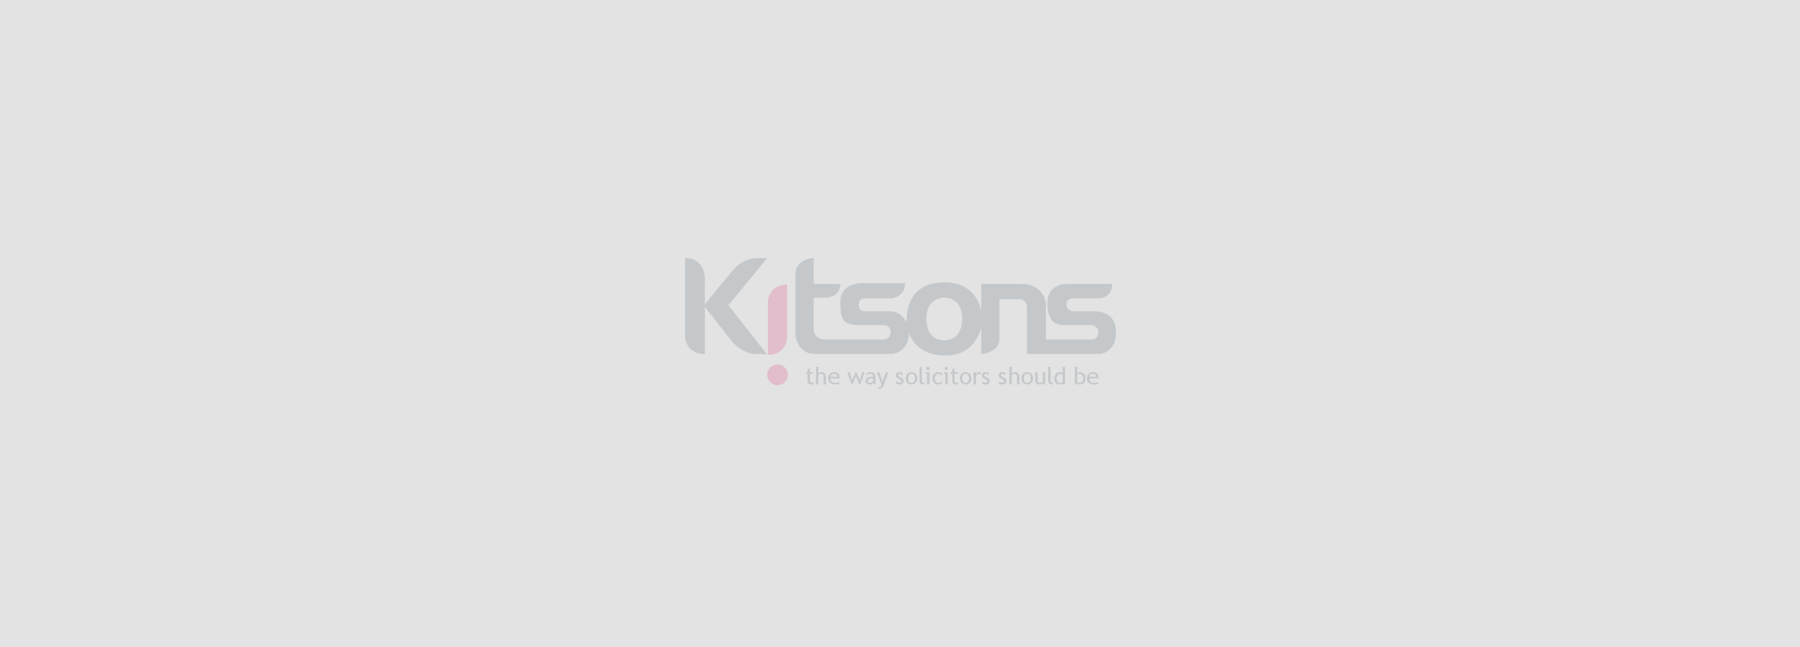 Kitsons Solicitors - COVID-19 Crisis: Guidance on Compliance with Family Court Child Arrangement Orders